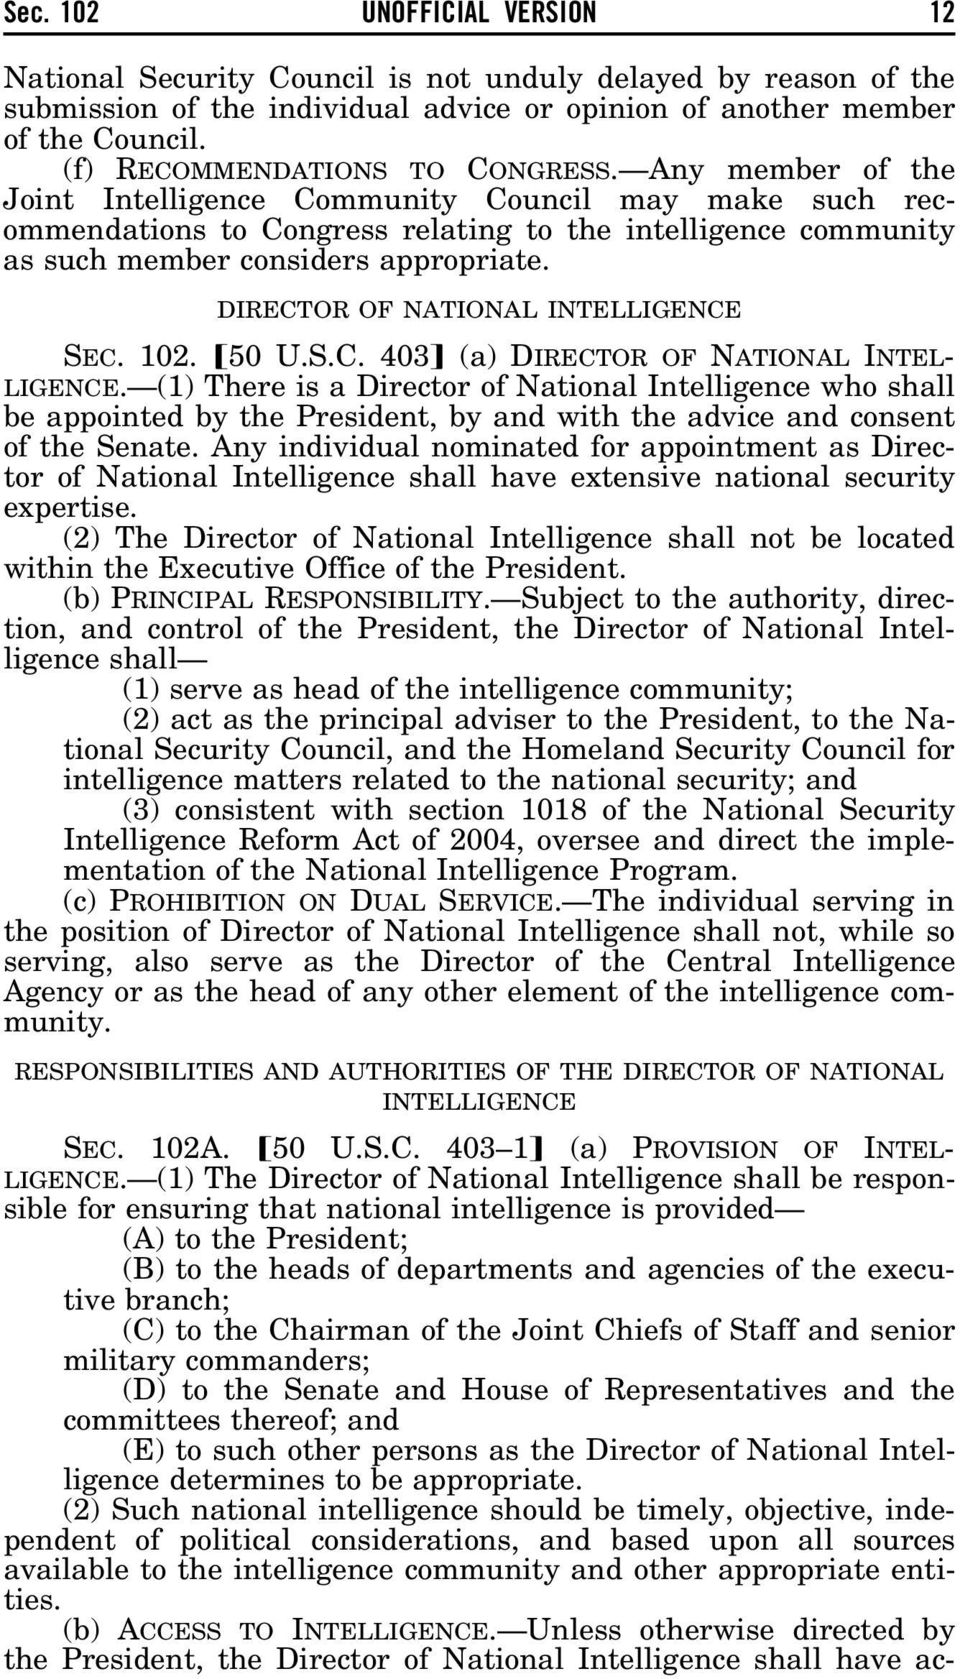 Any member of the Joint Intelligence Community Council may make such recommendations to Congress relating to the intelligence community as such member considers appropriate.